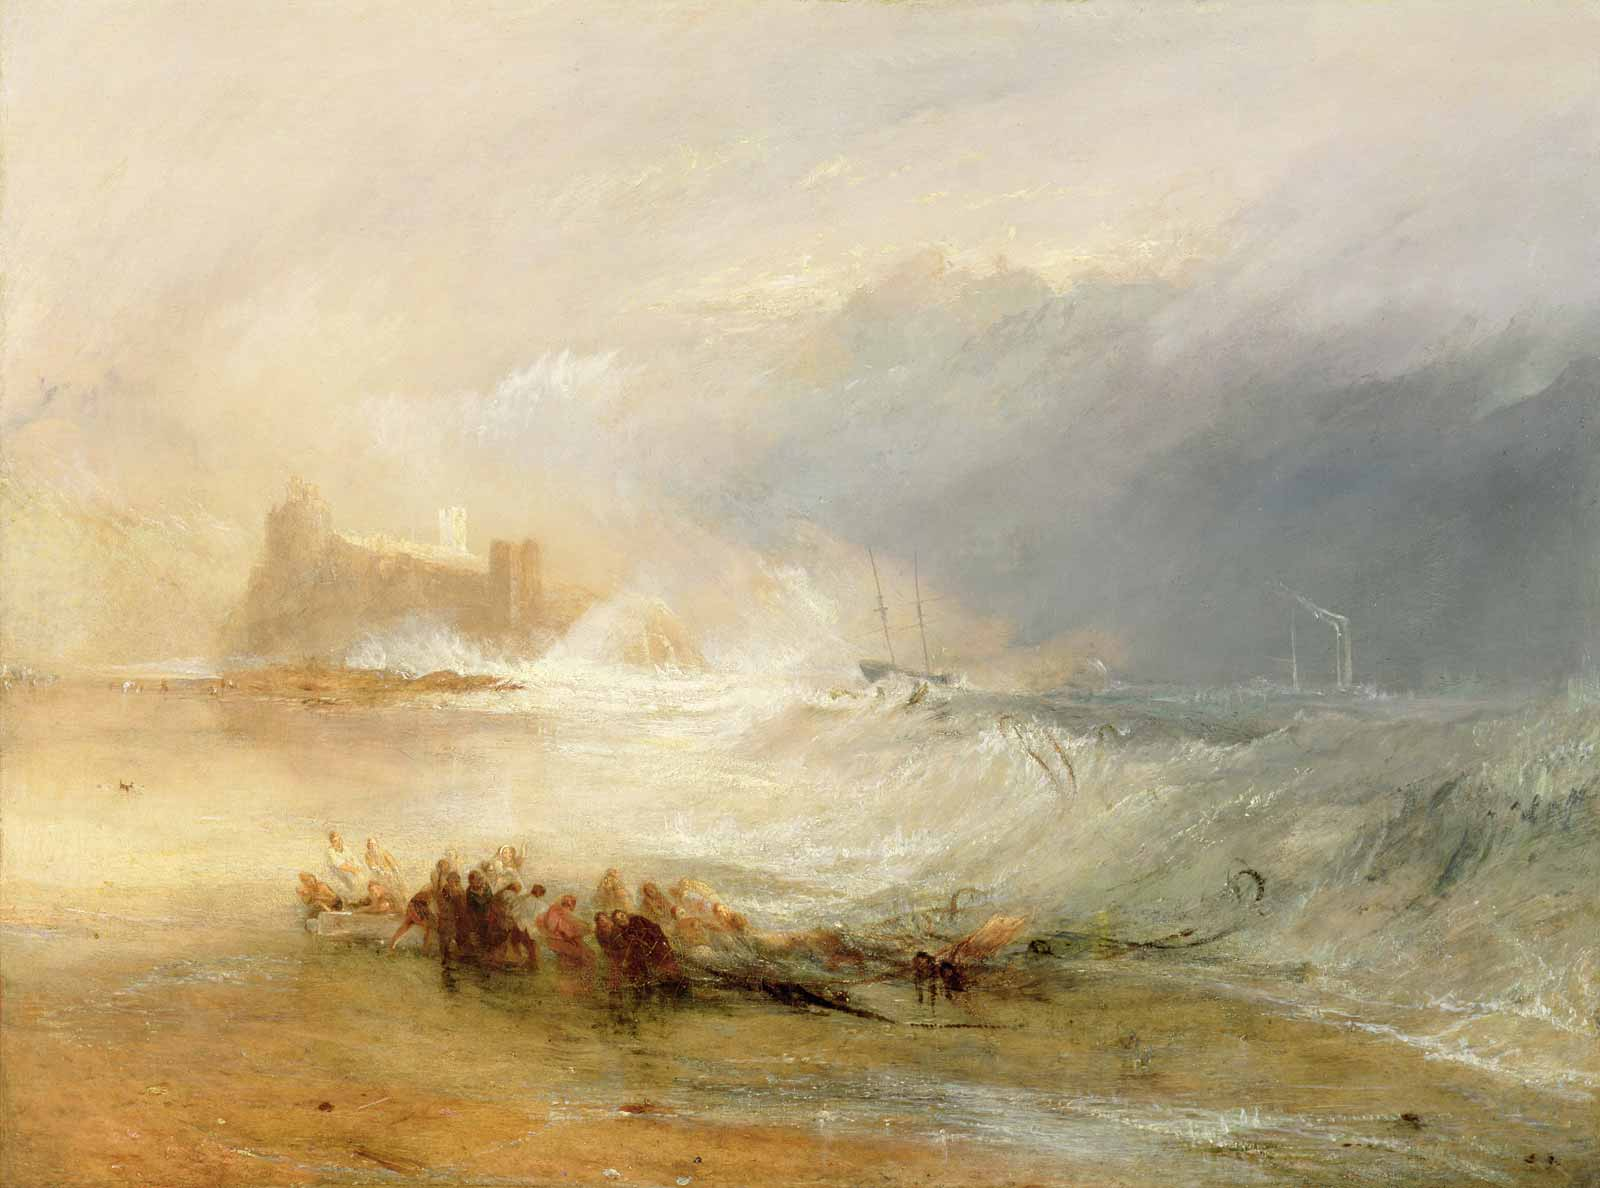 J.M.W. Turner: Wreckers—Coast of Northumberland, with a Steam-Boat Assisting a Ship off Shore, 1834